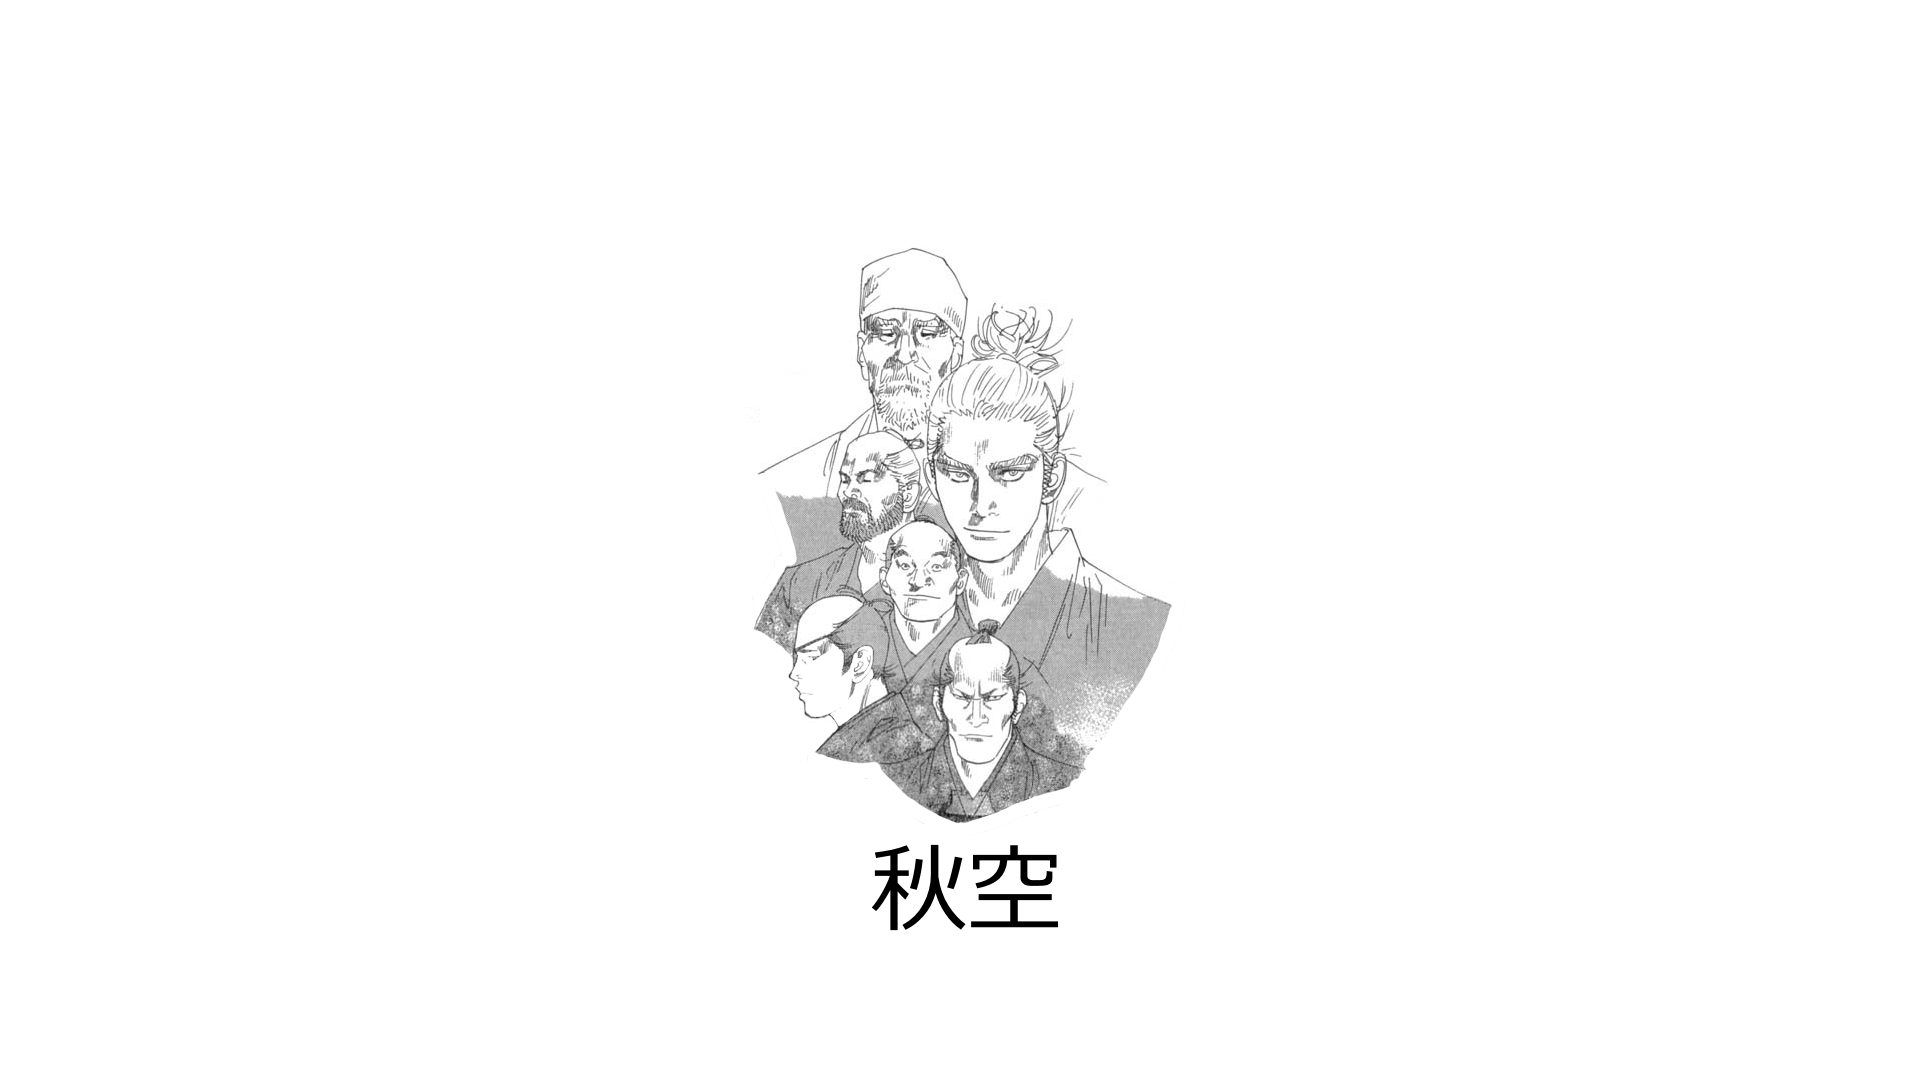 Another Vagabond Wallpaper With Kanji By Dandycide On Deviantart